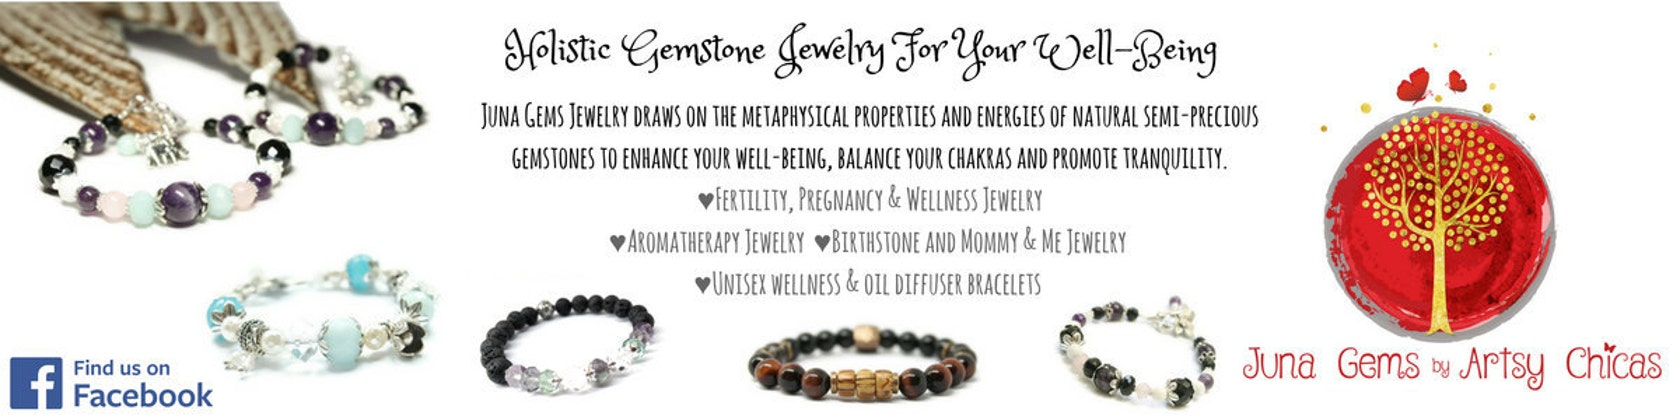 faa4083be63f Holistic Gemstone Fertility   Wellness Jewelry by artsychicas